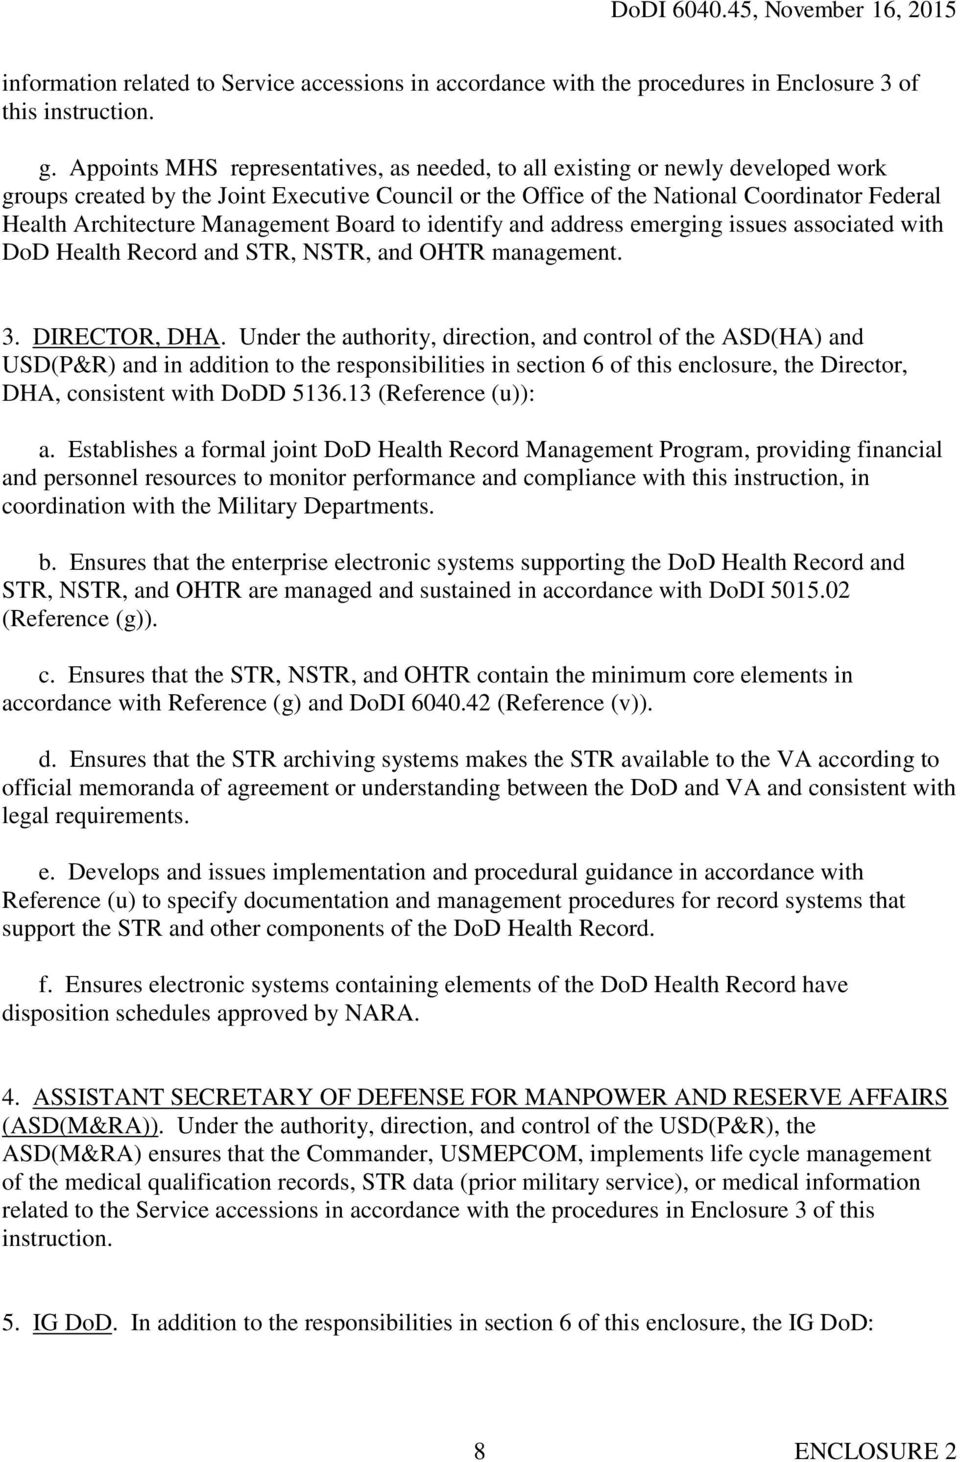 Management Board to identify and address emerging issues associated with DoD Health Record and STR, NSTR, and OHTR management. 3. DIRECTOR, DHA.